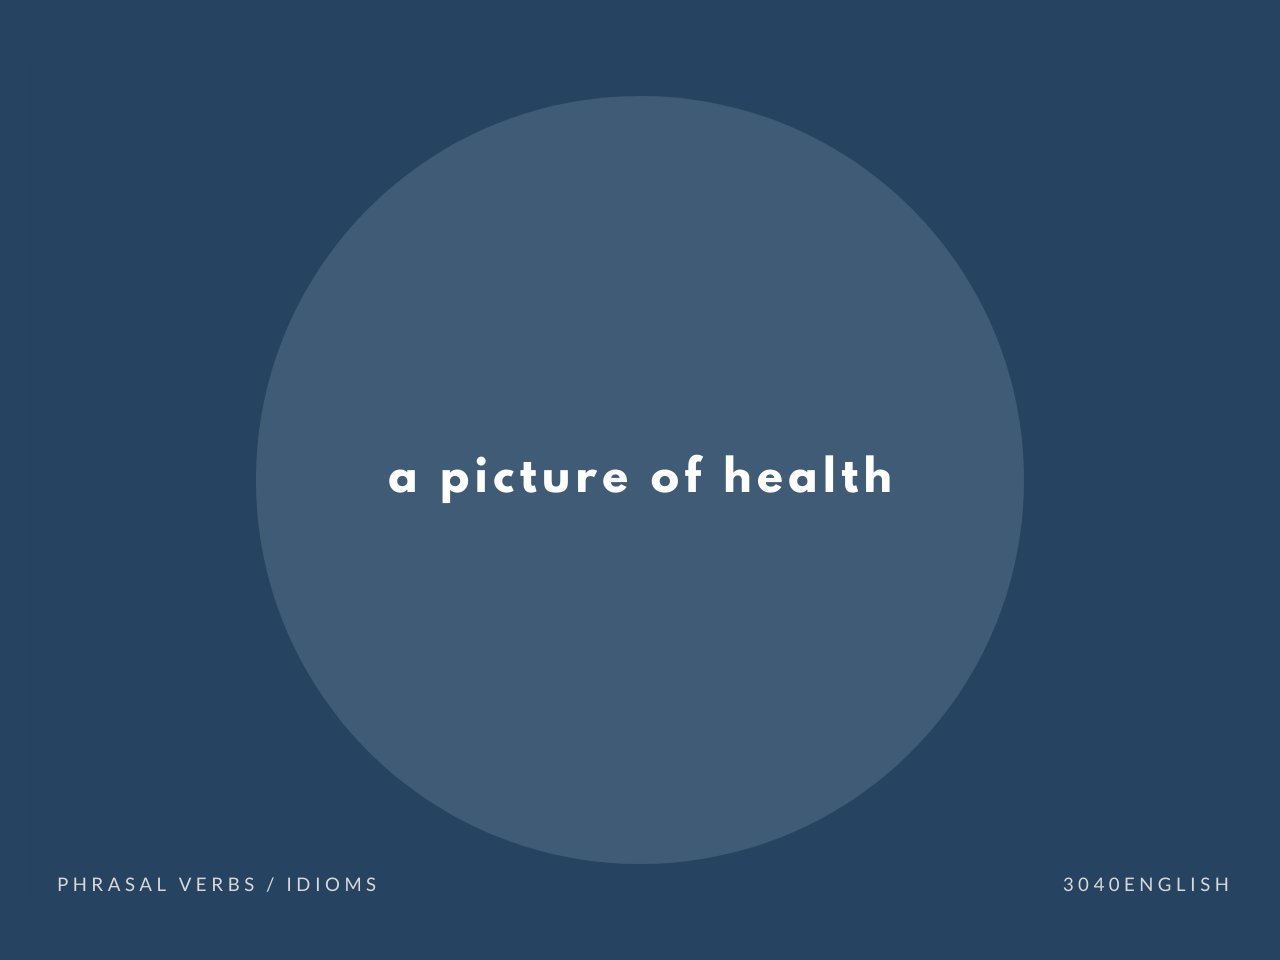 a picture of health の意味と簡単な使い方【音読用例文あり】